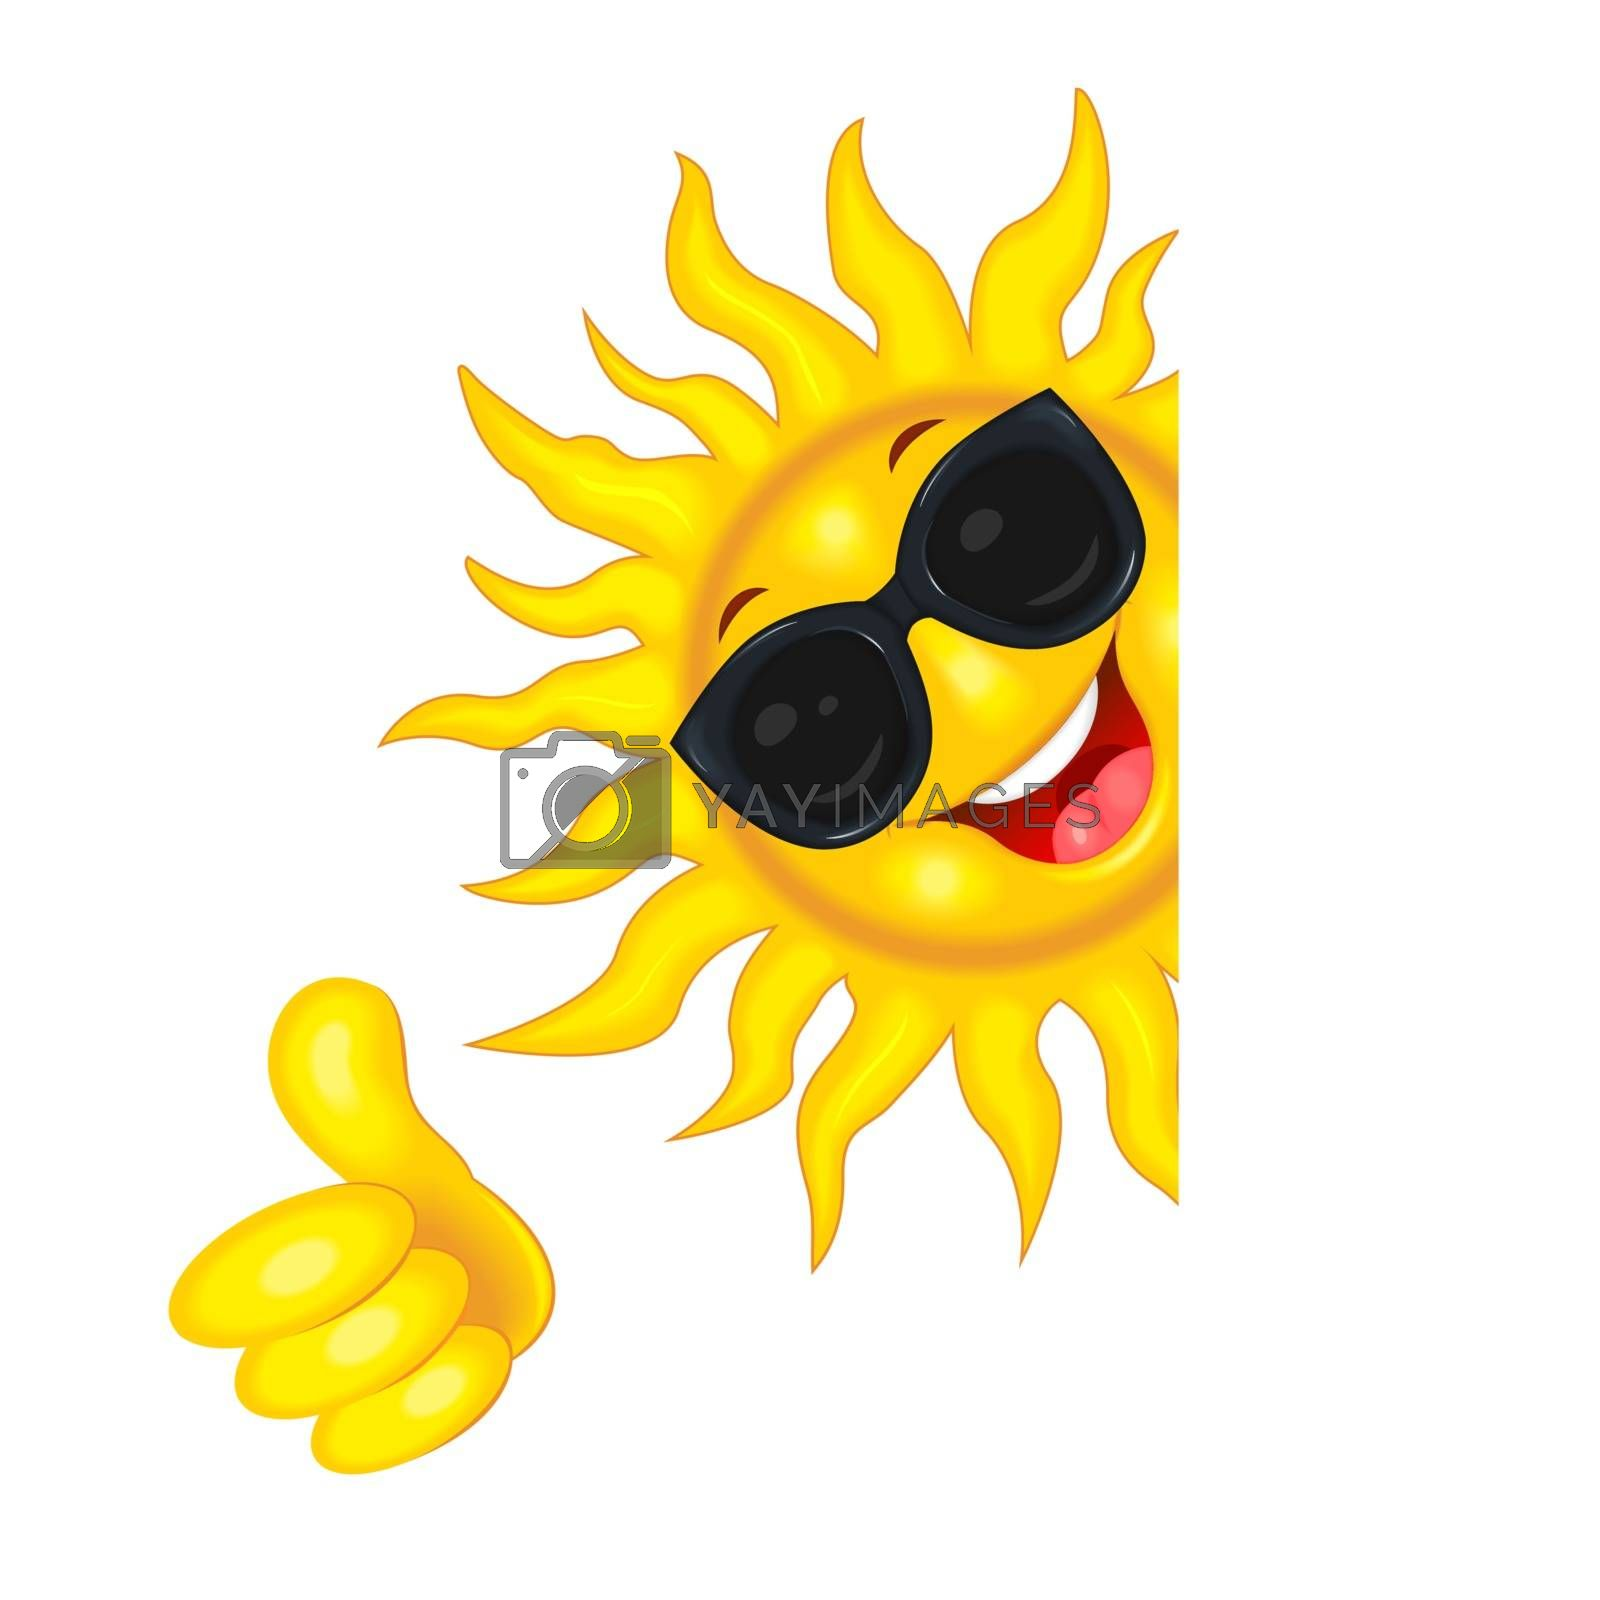 The sun in sunglasses wishes good luck by liolle